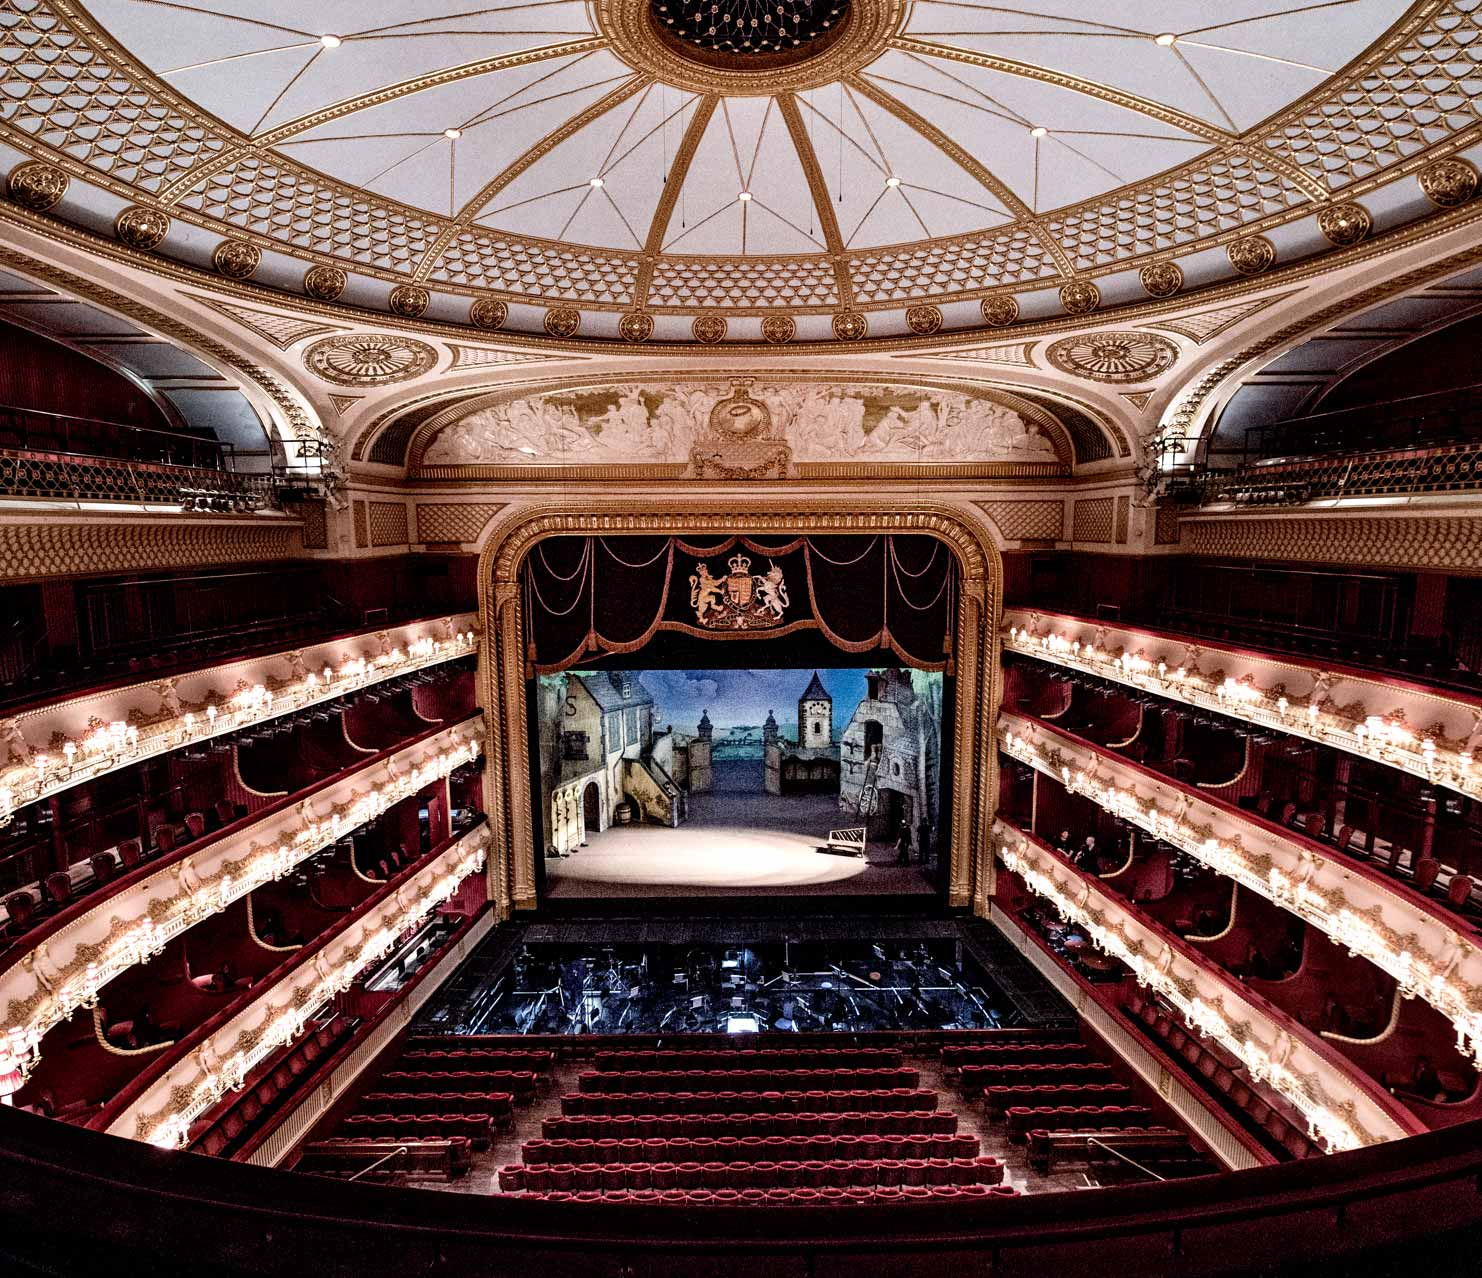 Royal Opera House interior